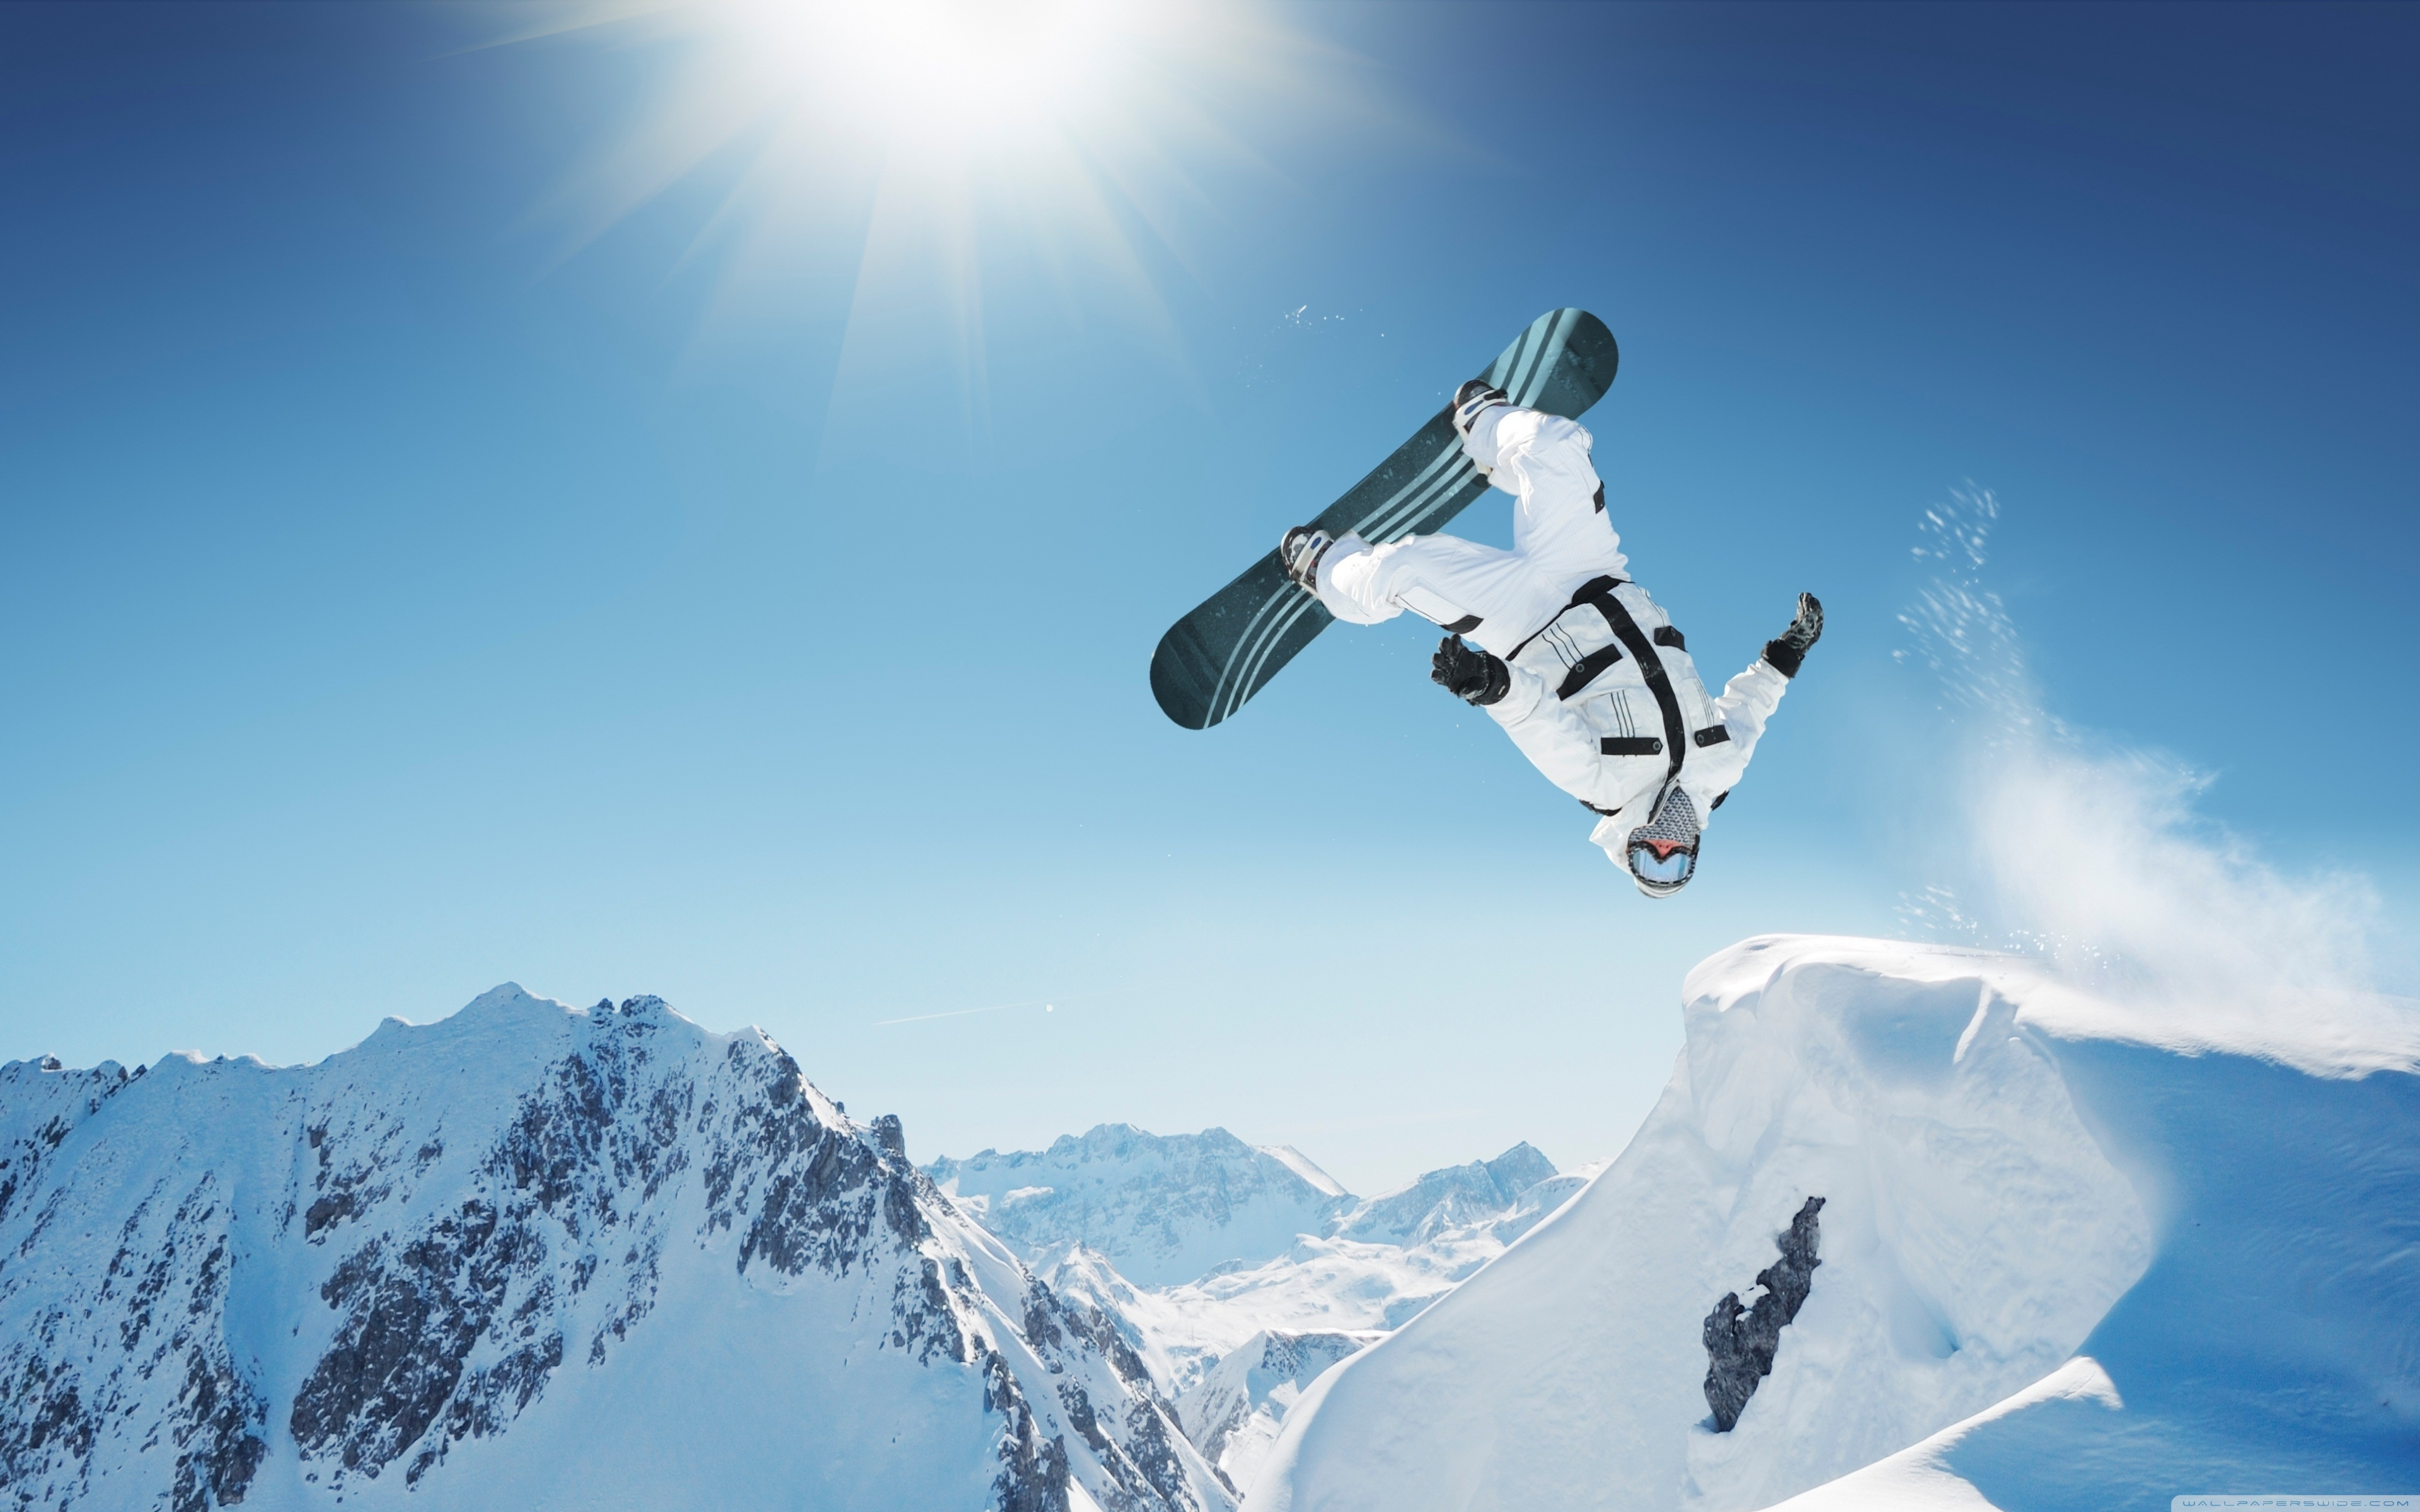 3840x2400 - Snowboarding Wallpapers 7